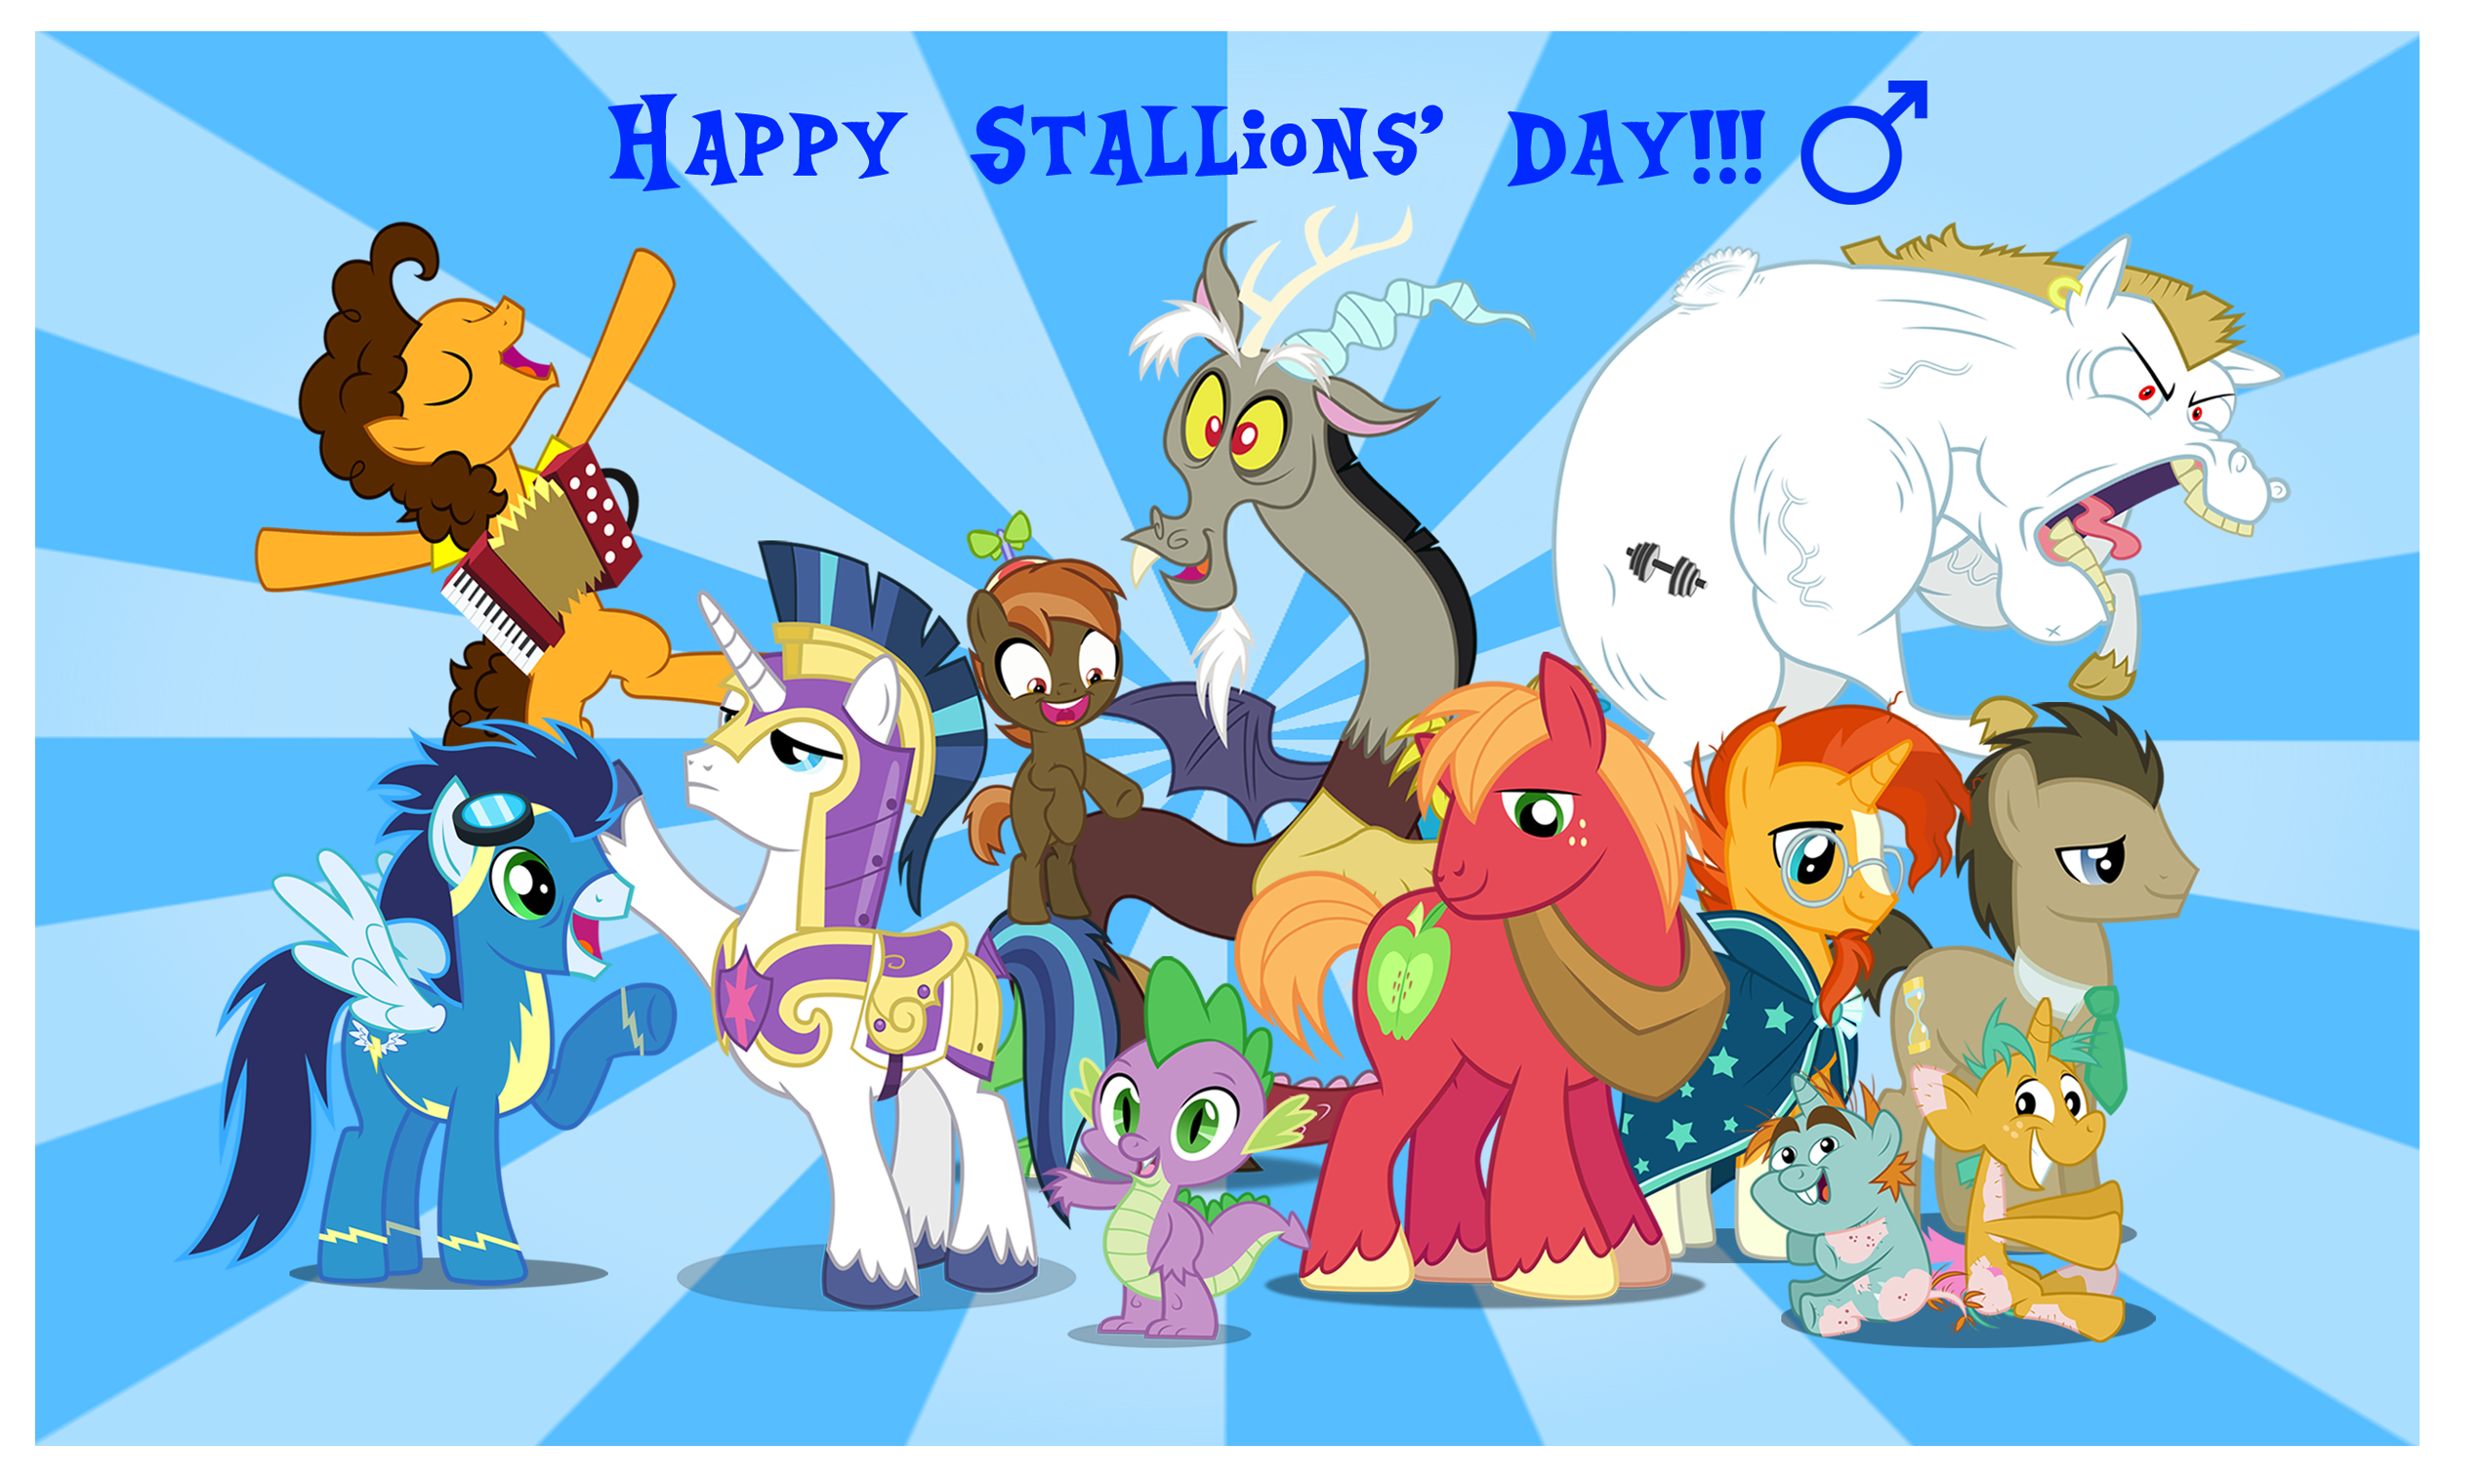 1299344__safe_spike_discord_big+macintosh_shining+armor_soarin%27_doctor+whooves_male_stallion_snails.png